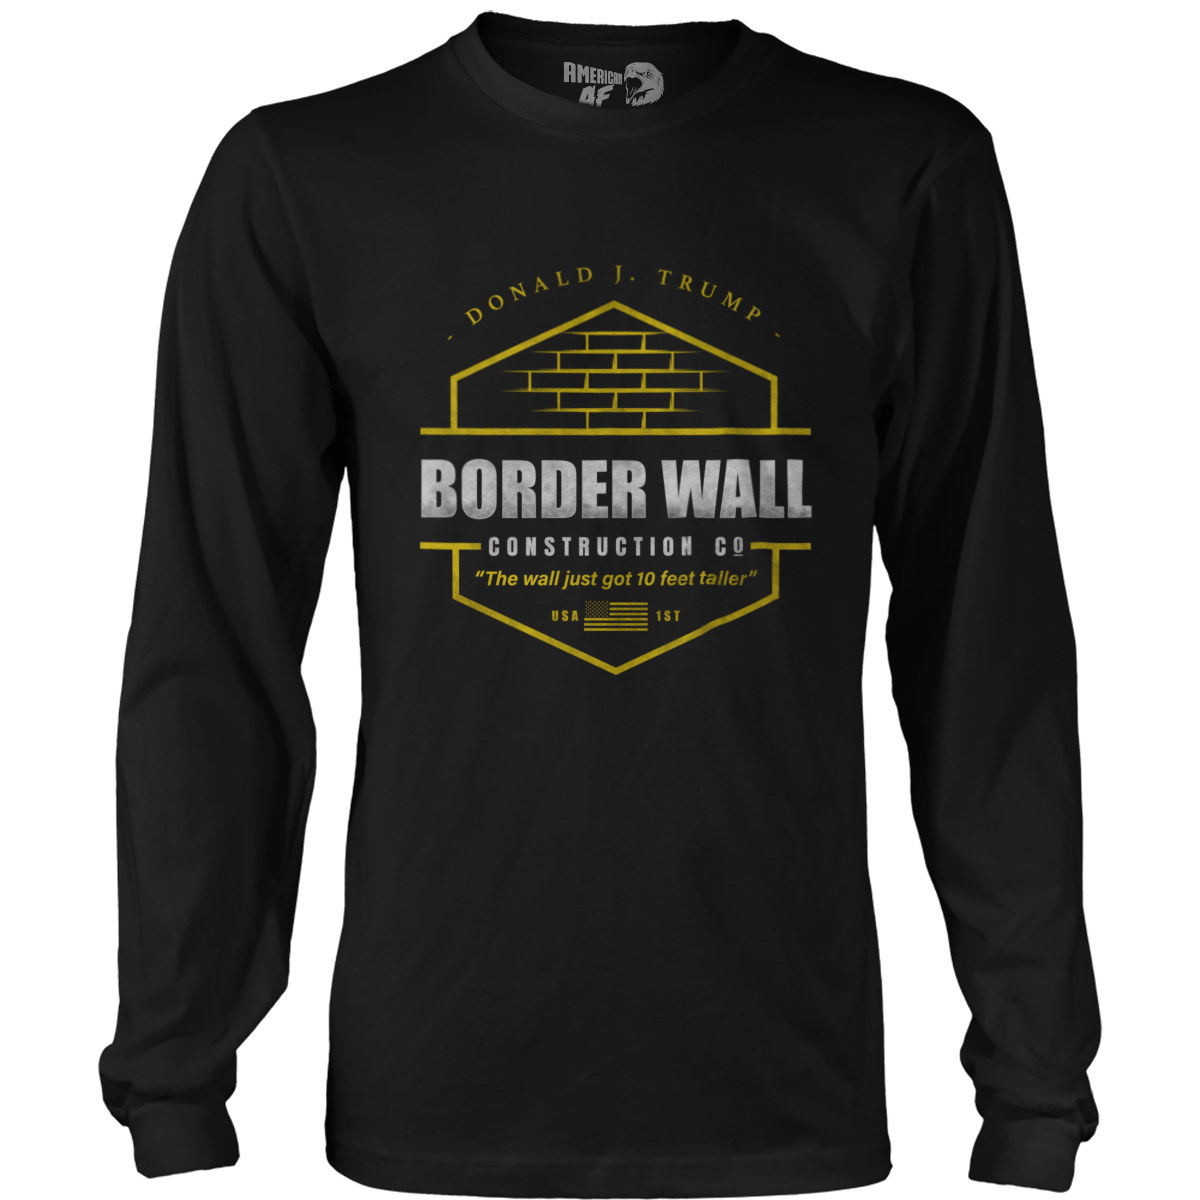 Trump Border Wall Construction Co Parody Men/'s T-Shirt up to 5x NEW DESIGN 2